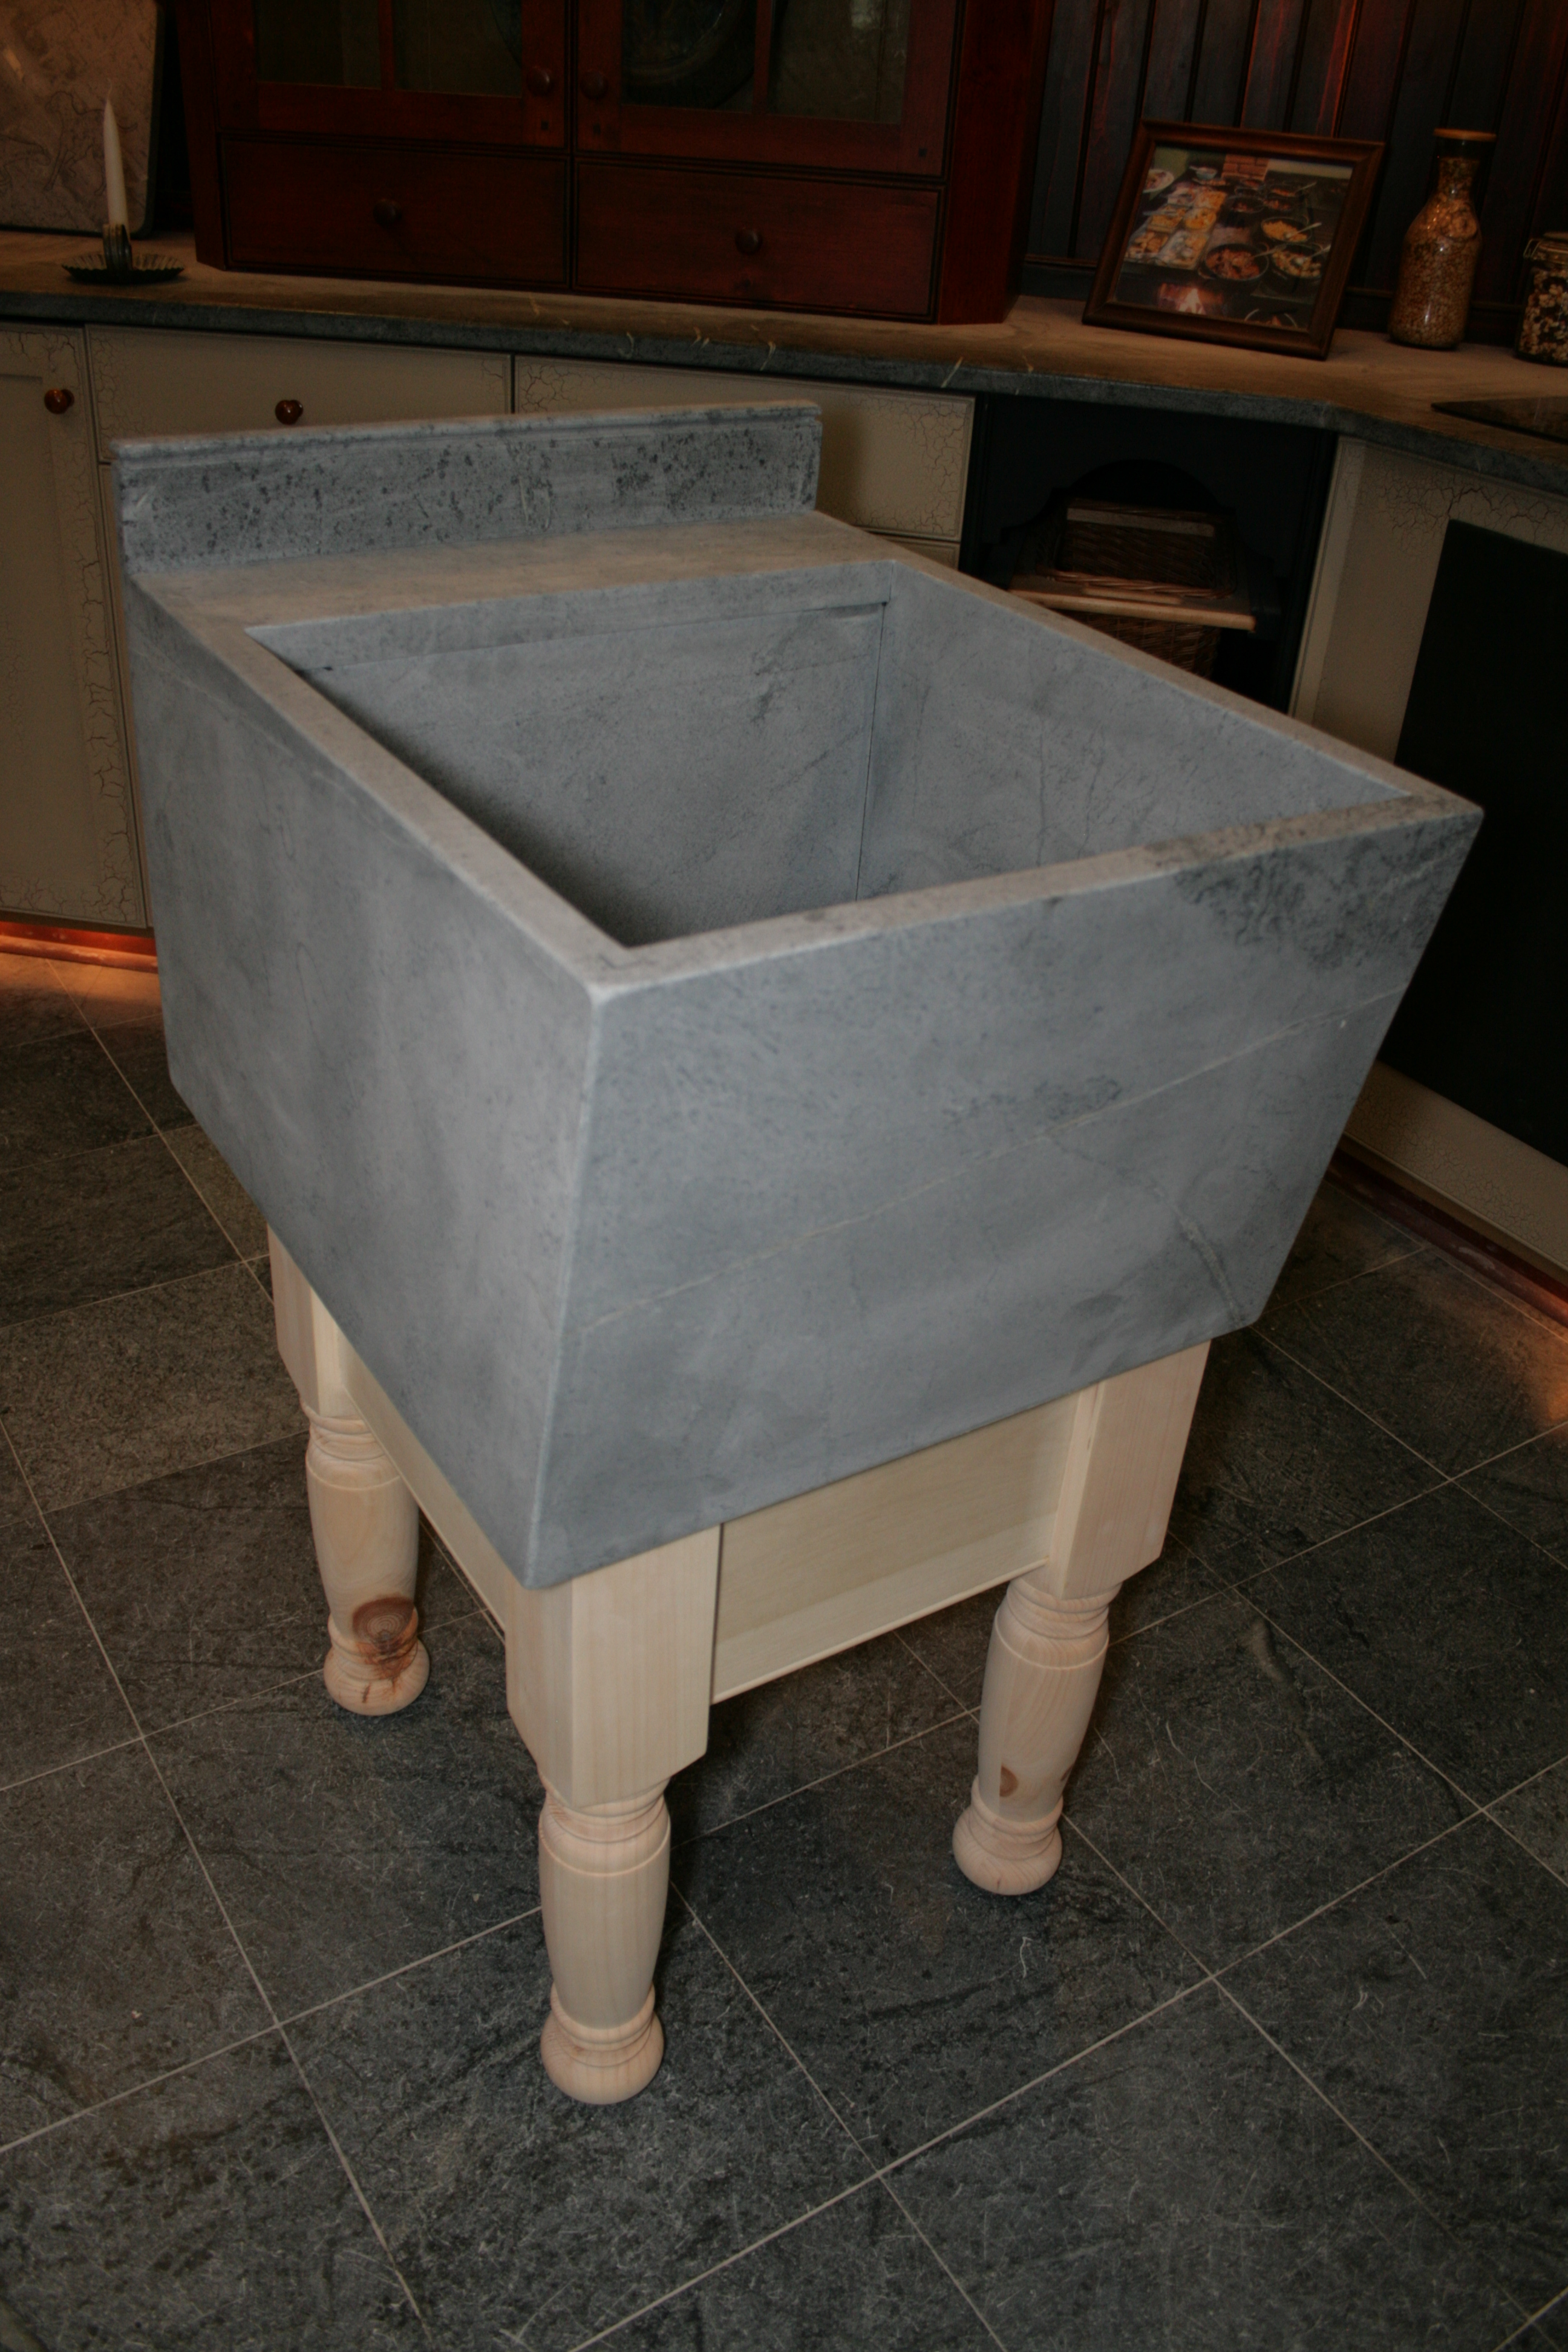 Laundry sink with unfinished base